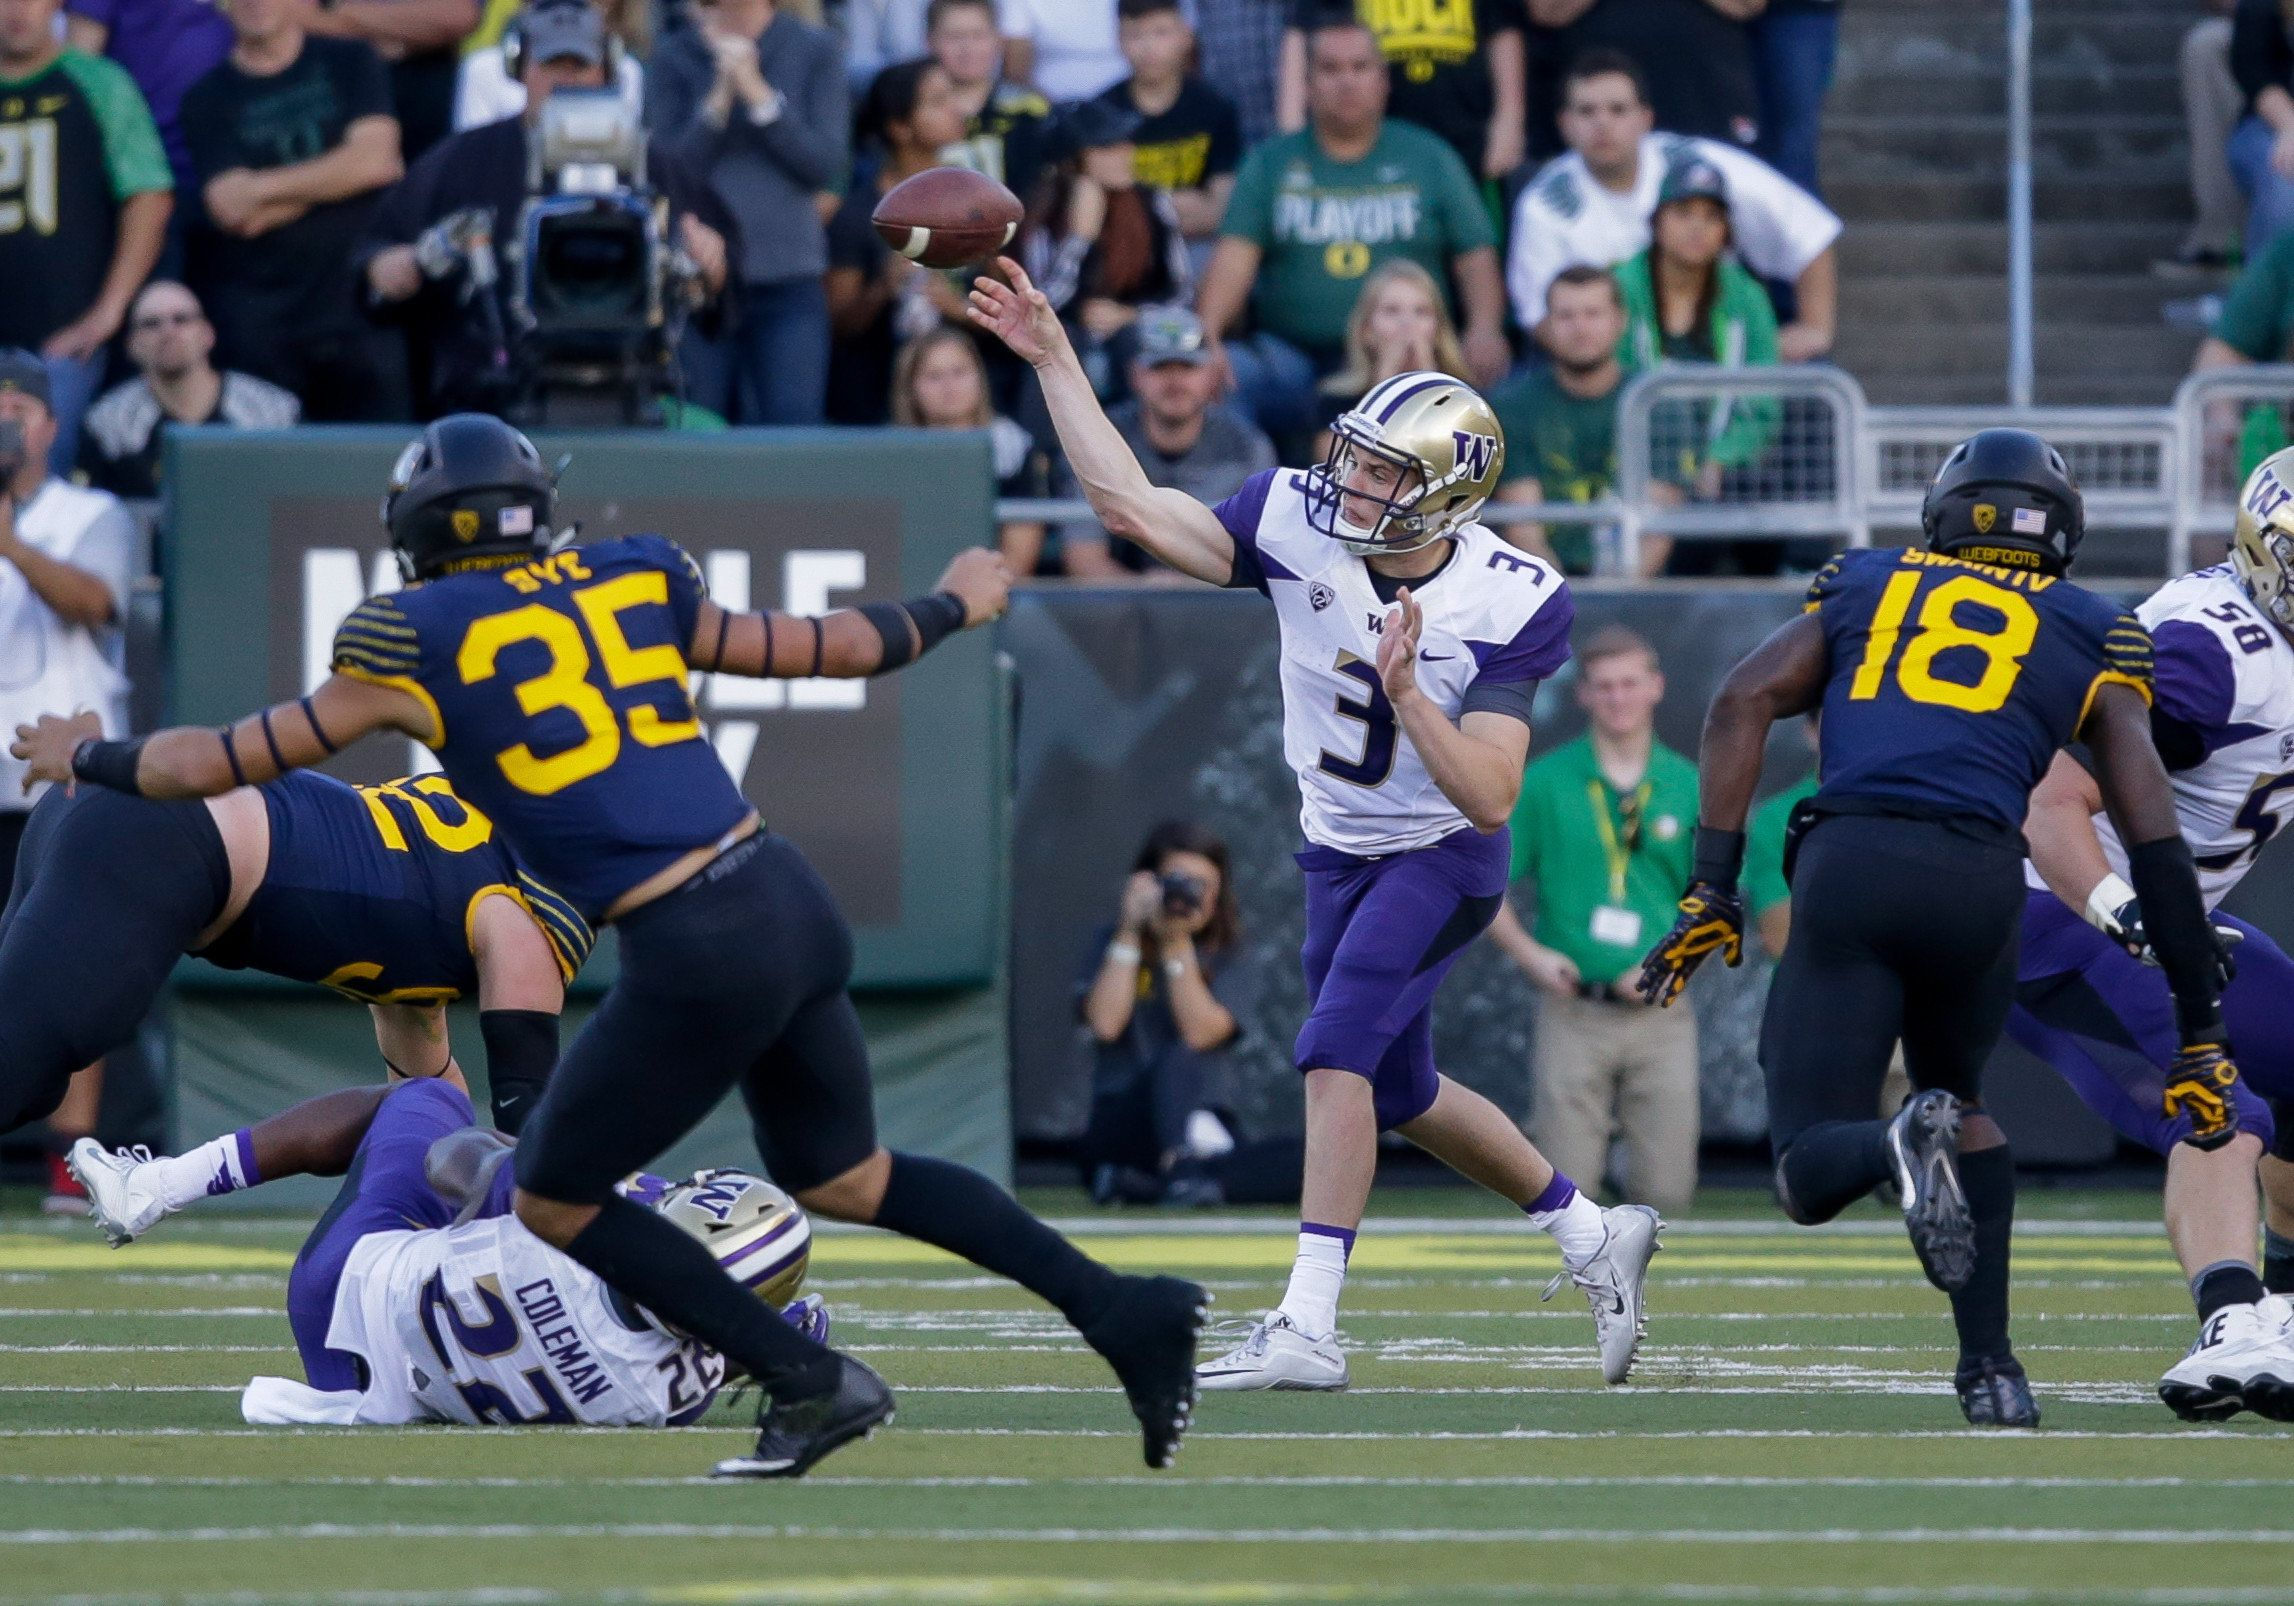 October 8, 2016: Washington Huskies quarterback Jake Browning (3) throws a pass during the game between Washington Huskies and the Oregon Ducks at the Autzen Stadium in Eugene, Oregon. (Photo by Steve Conner/Icon Sportswire via Getty Images)